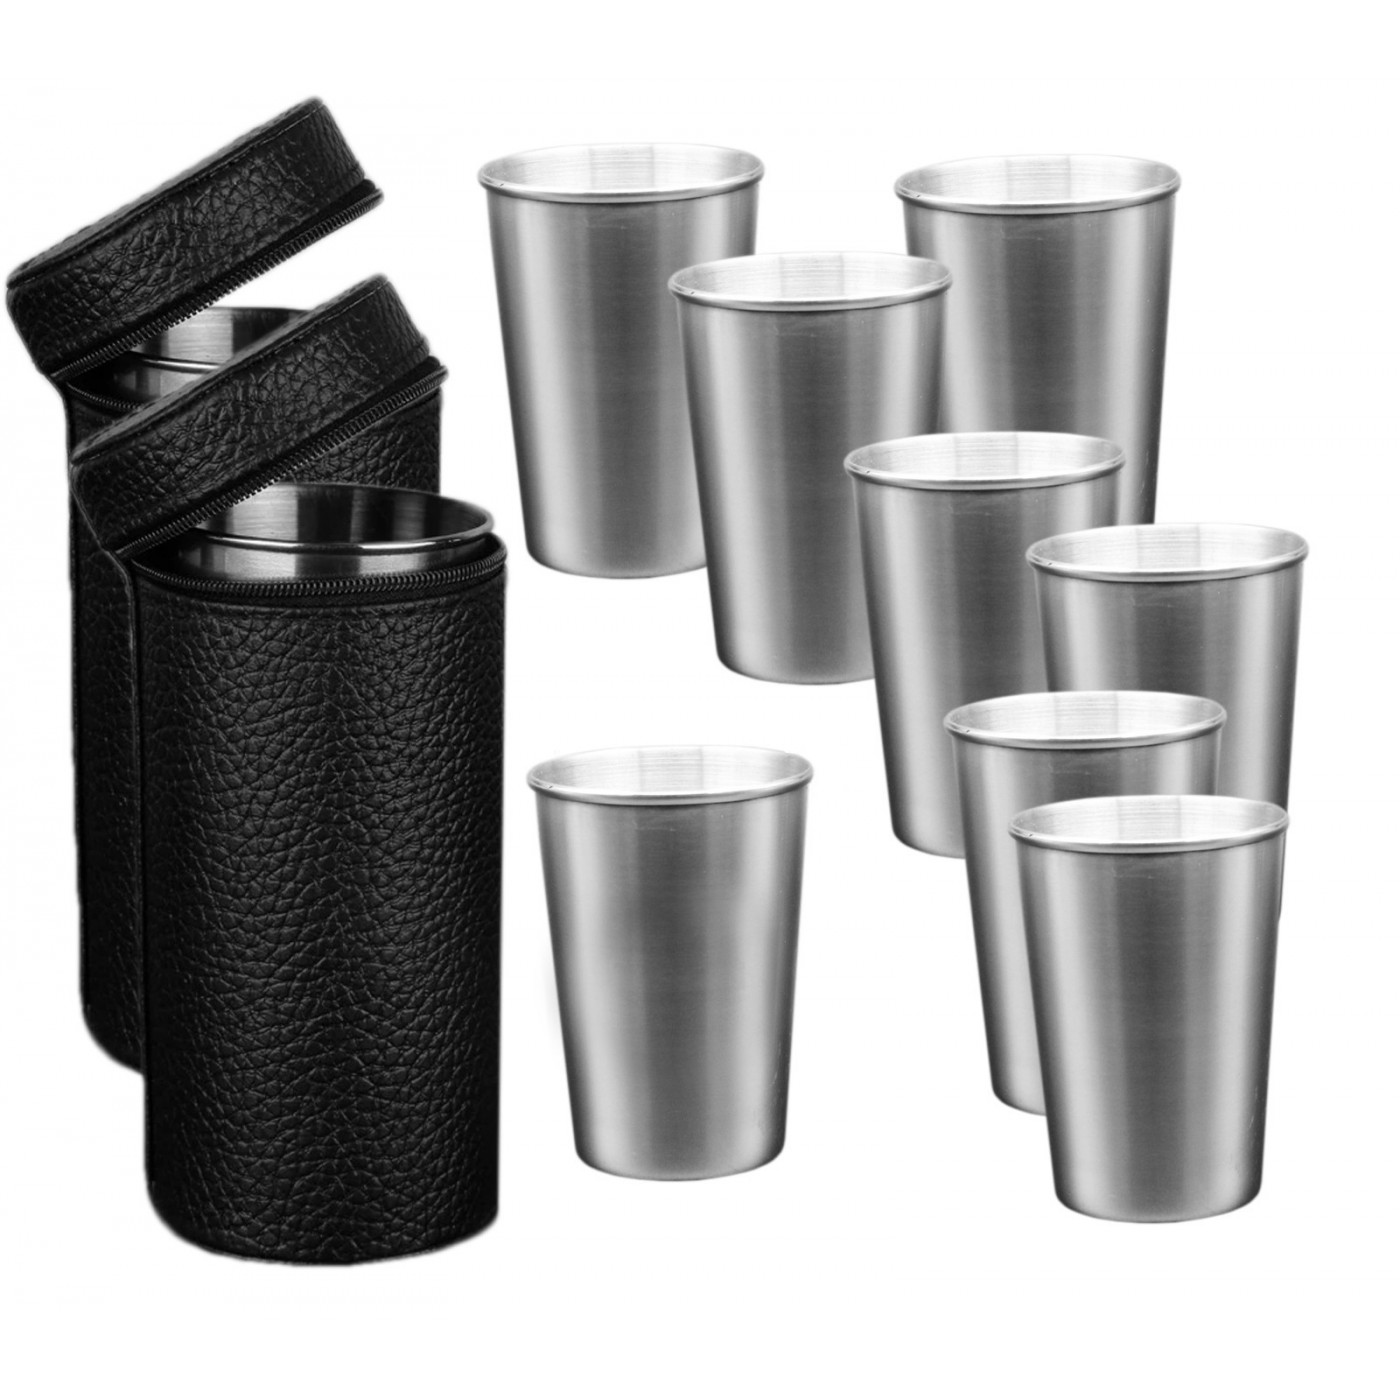 Set of 8 stainless steel cups (170 ml) with 2 leather bags